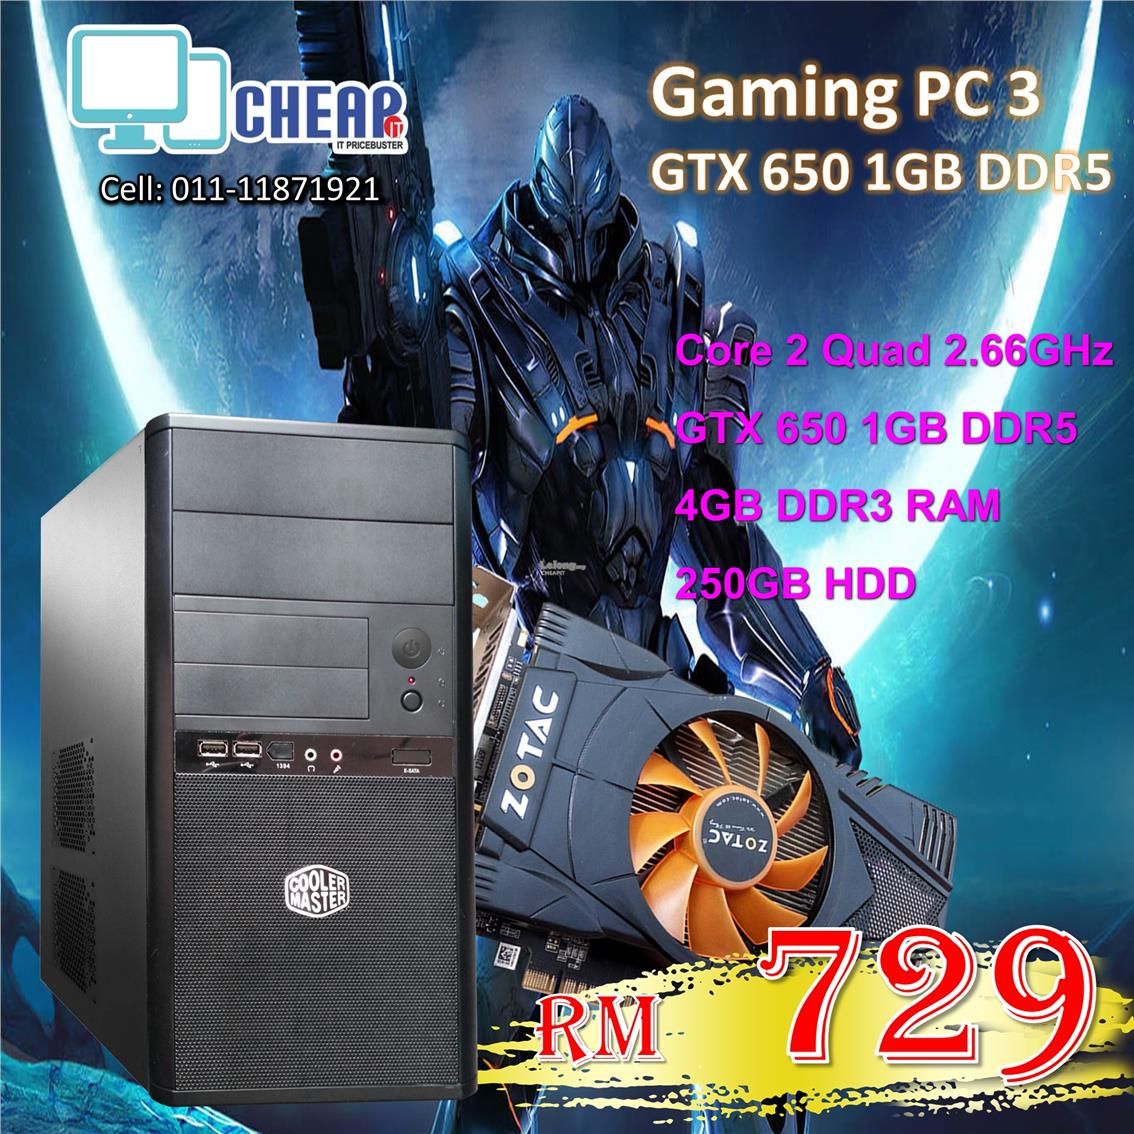 Gaming PC Core 2 Quad + GTX 650 1GB DDR5